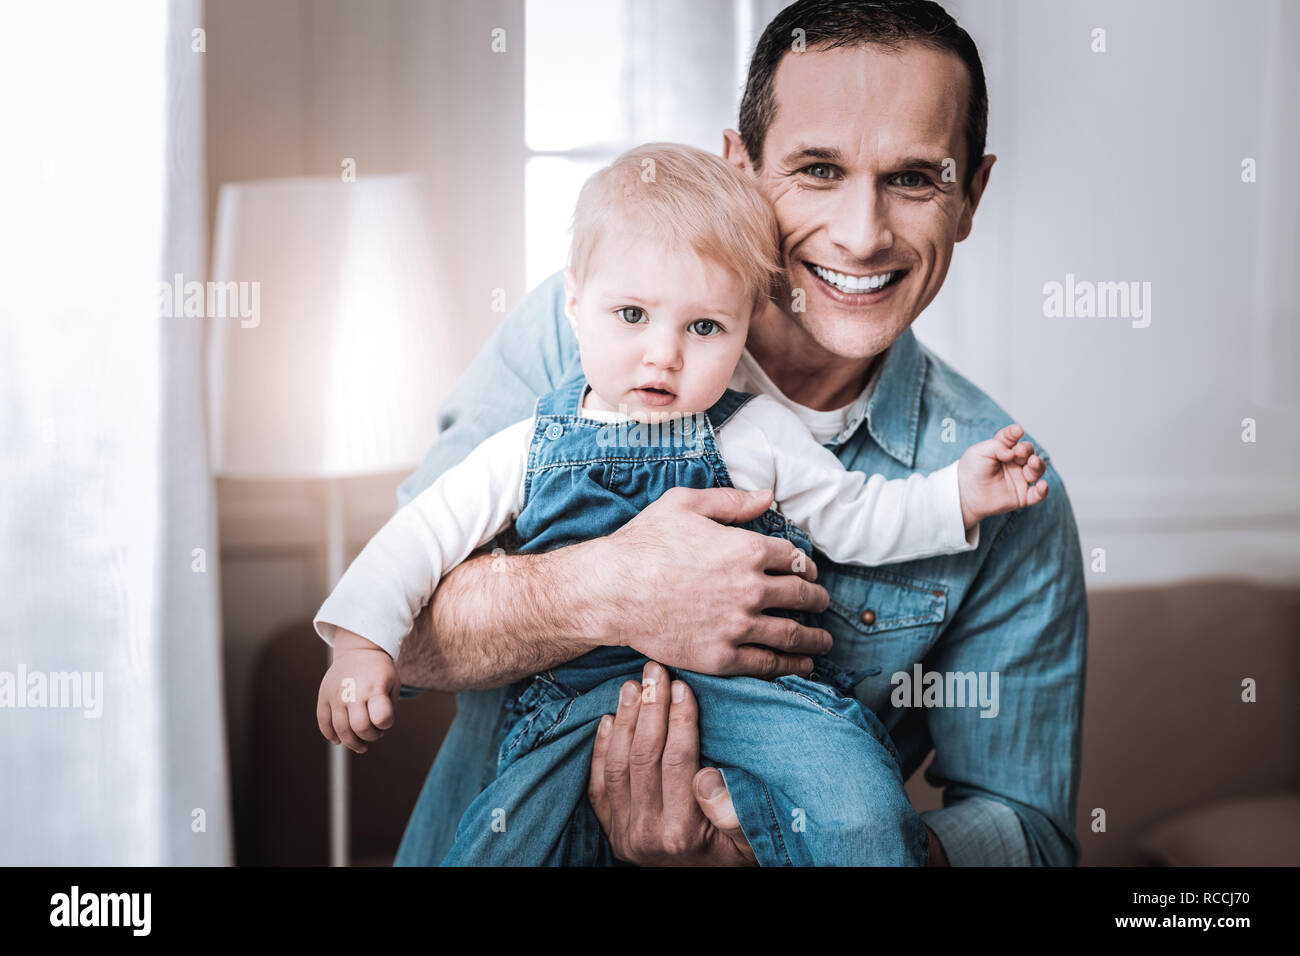 Happy joyful father looking at you - Stock Image